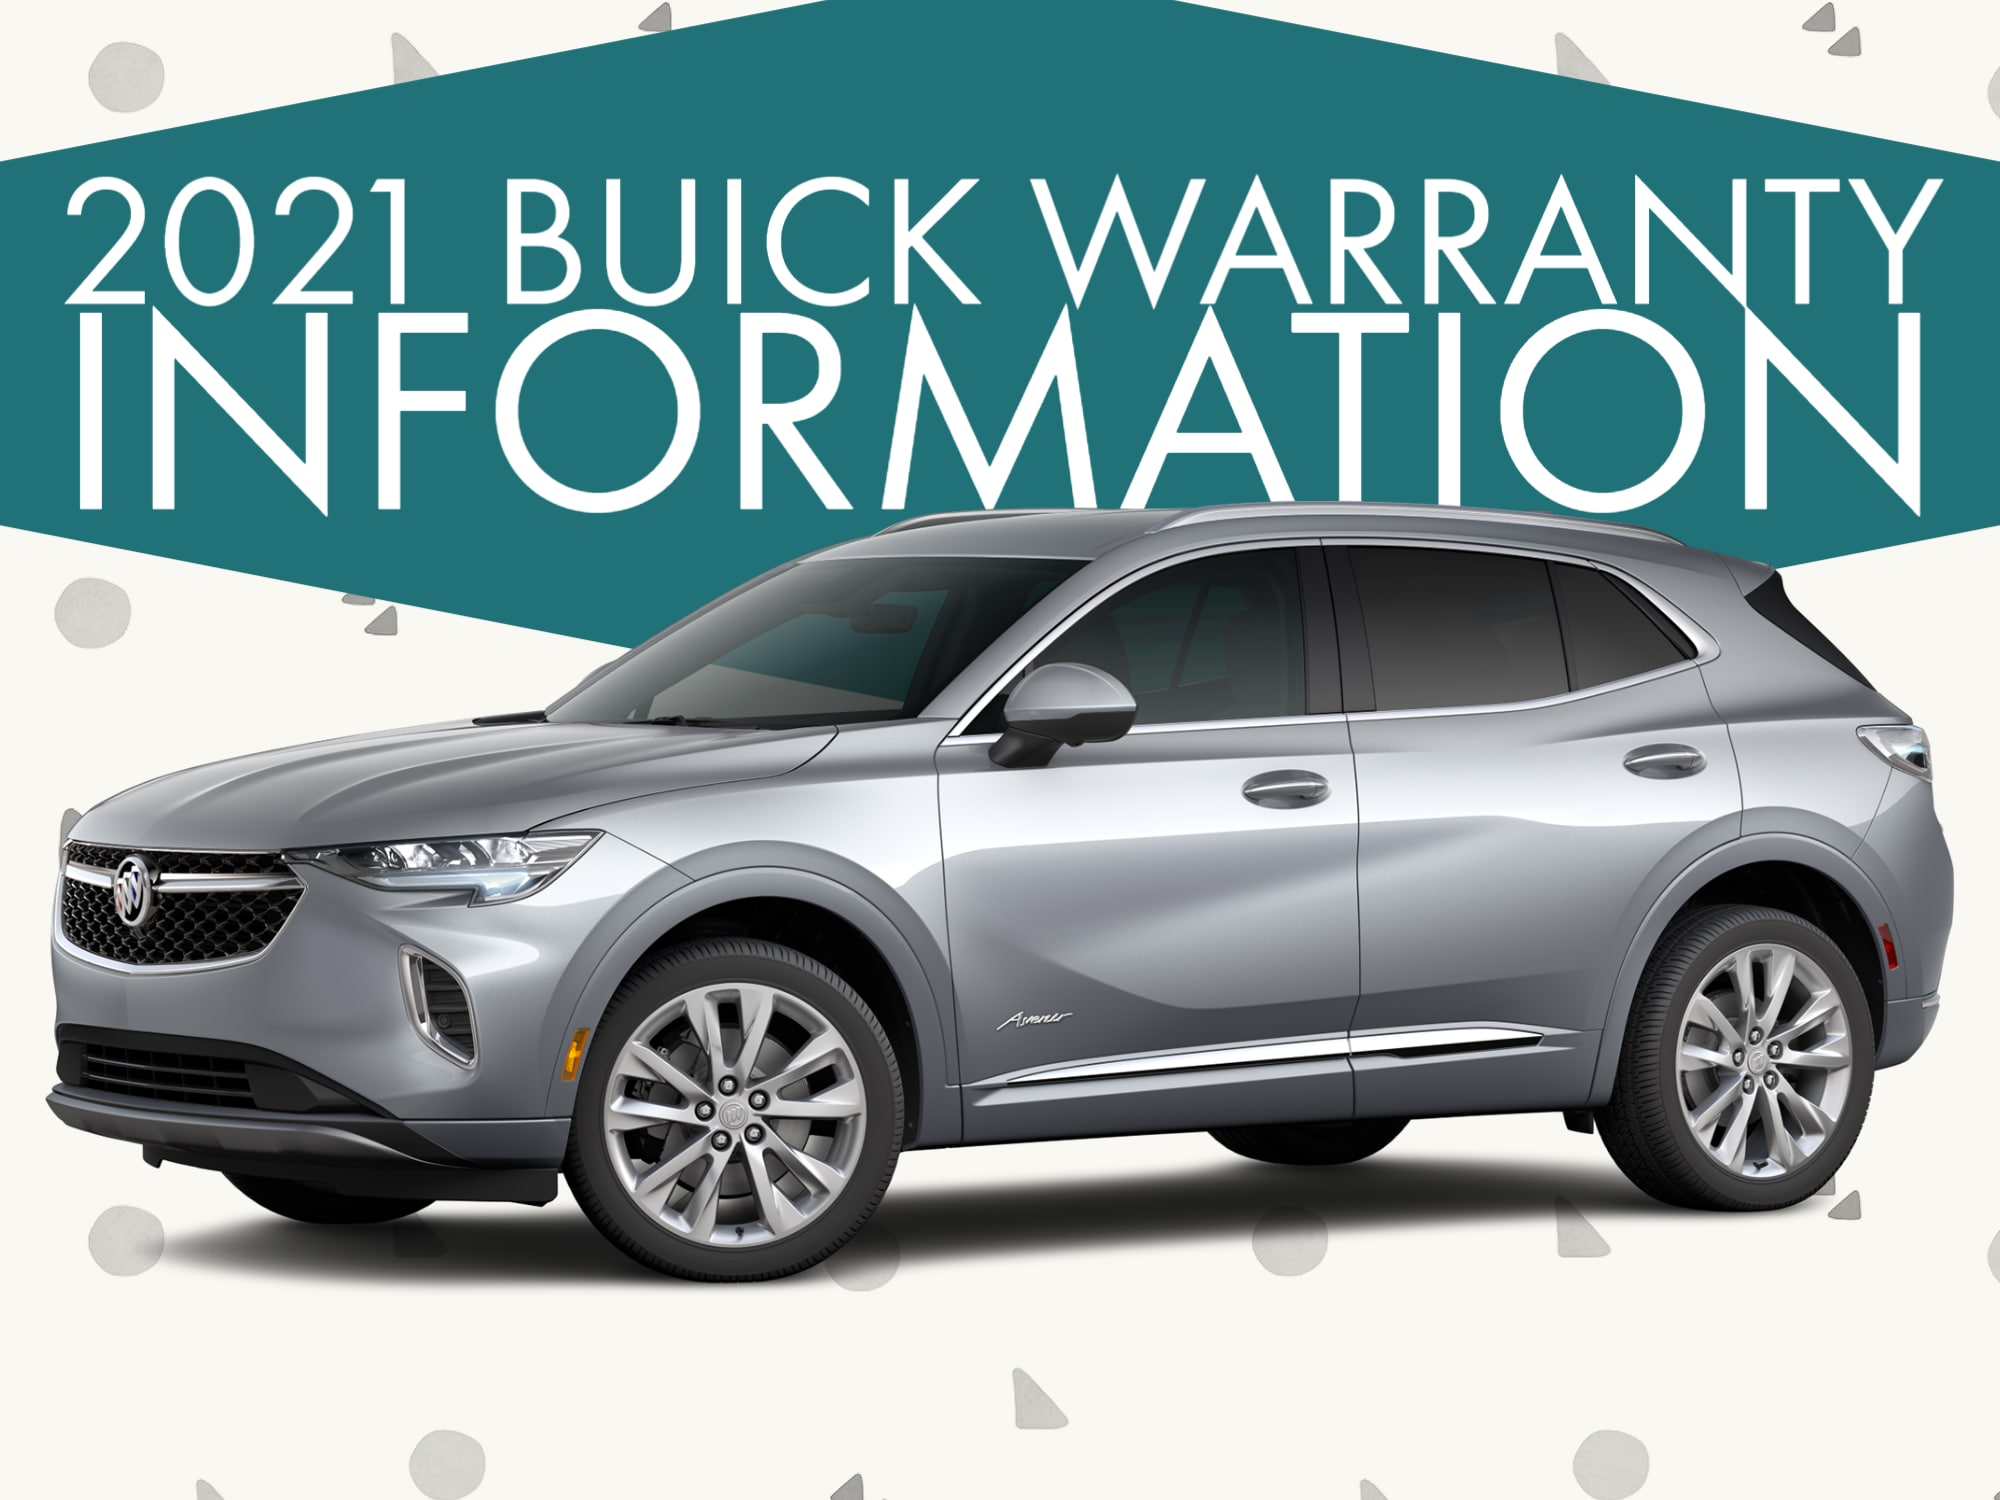 """Silver Buick SUV Side View with """"2021 Buick Warranty Information"""""""